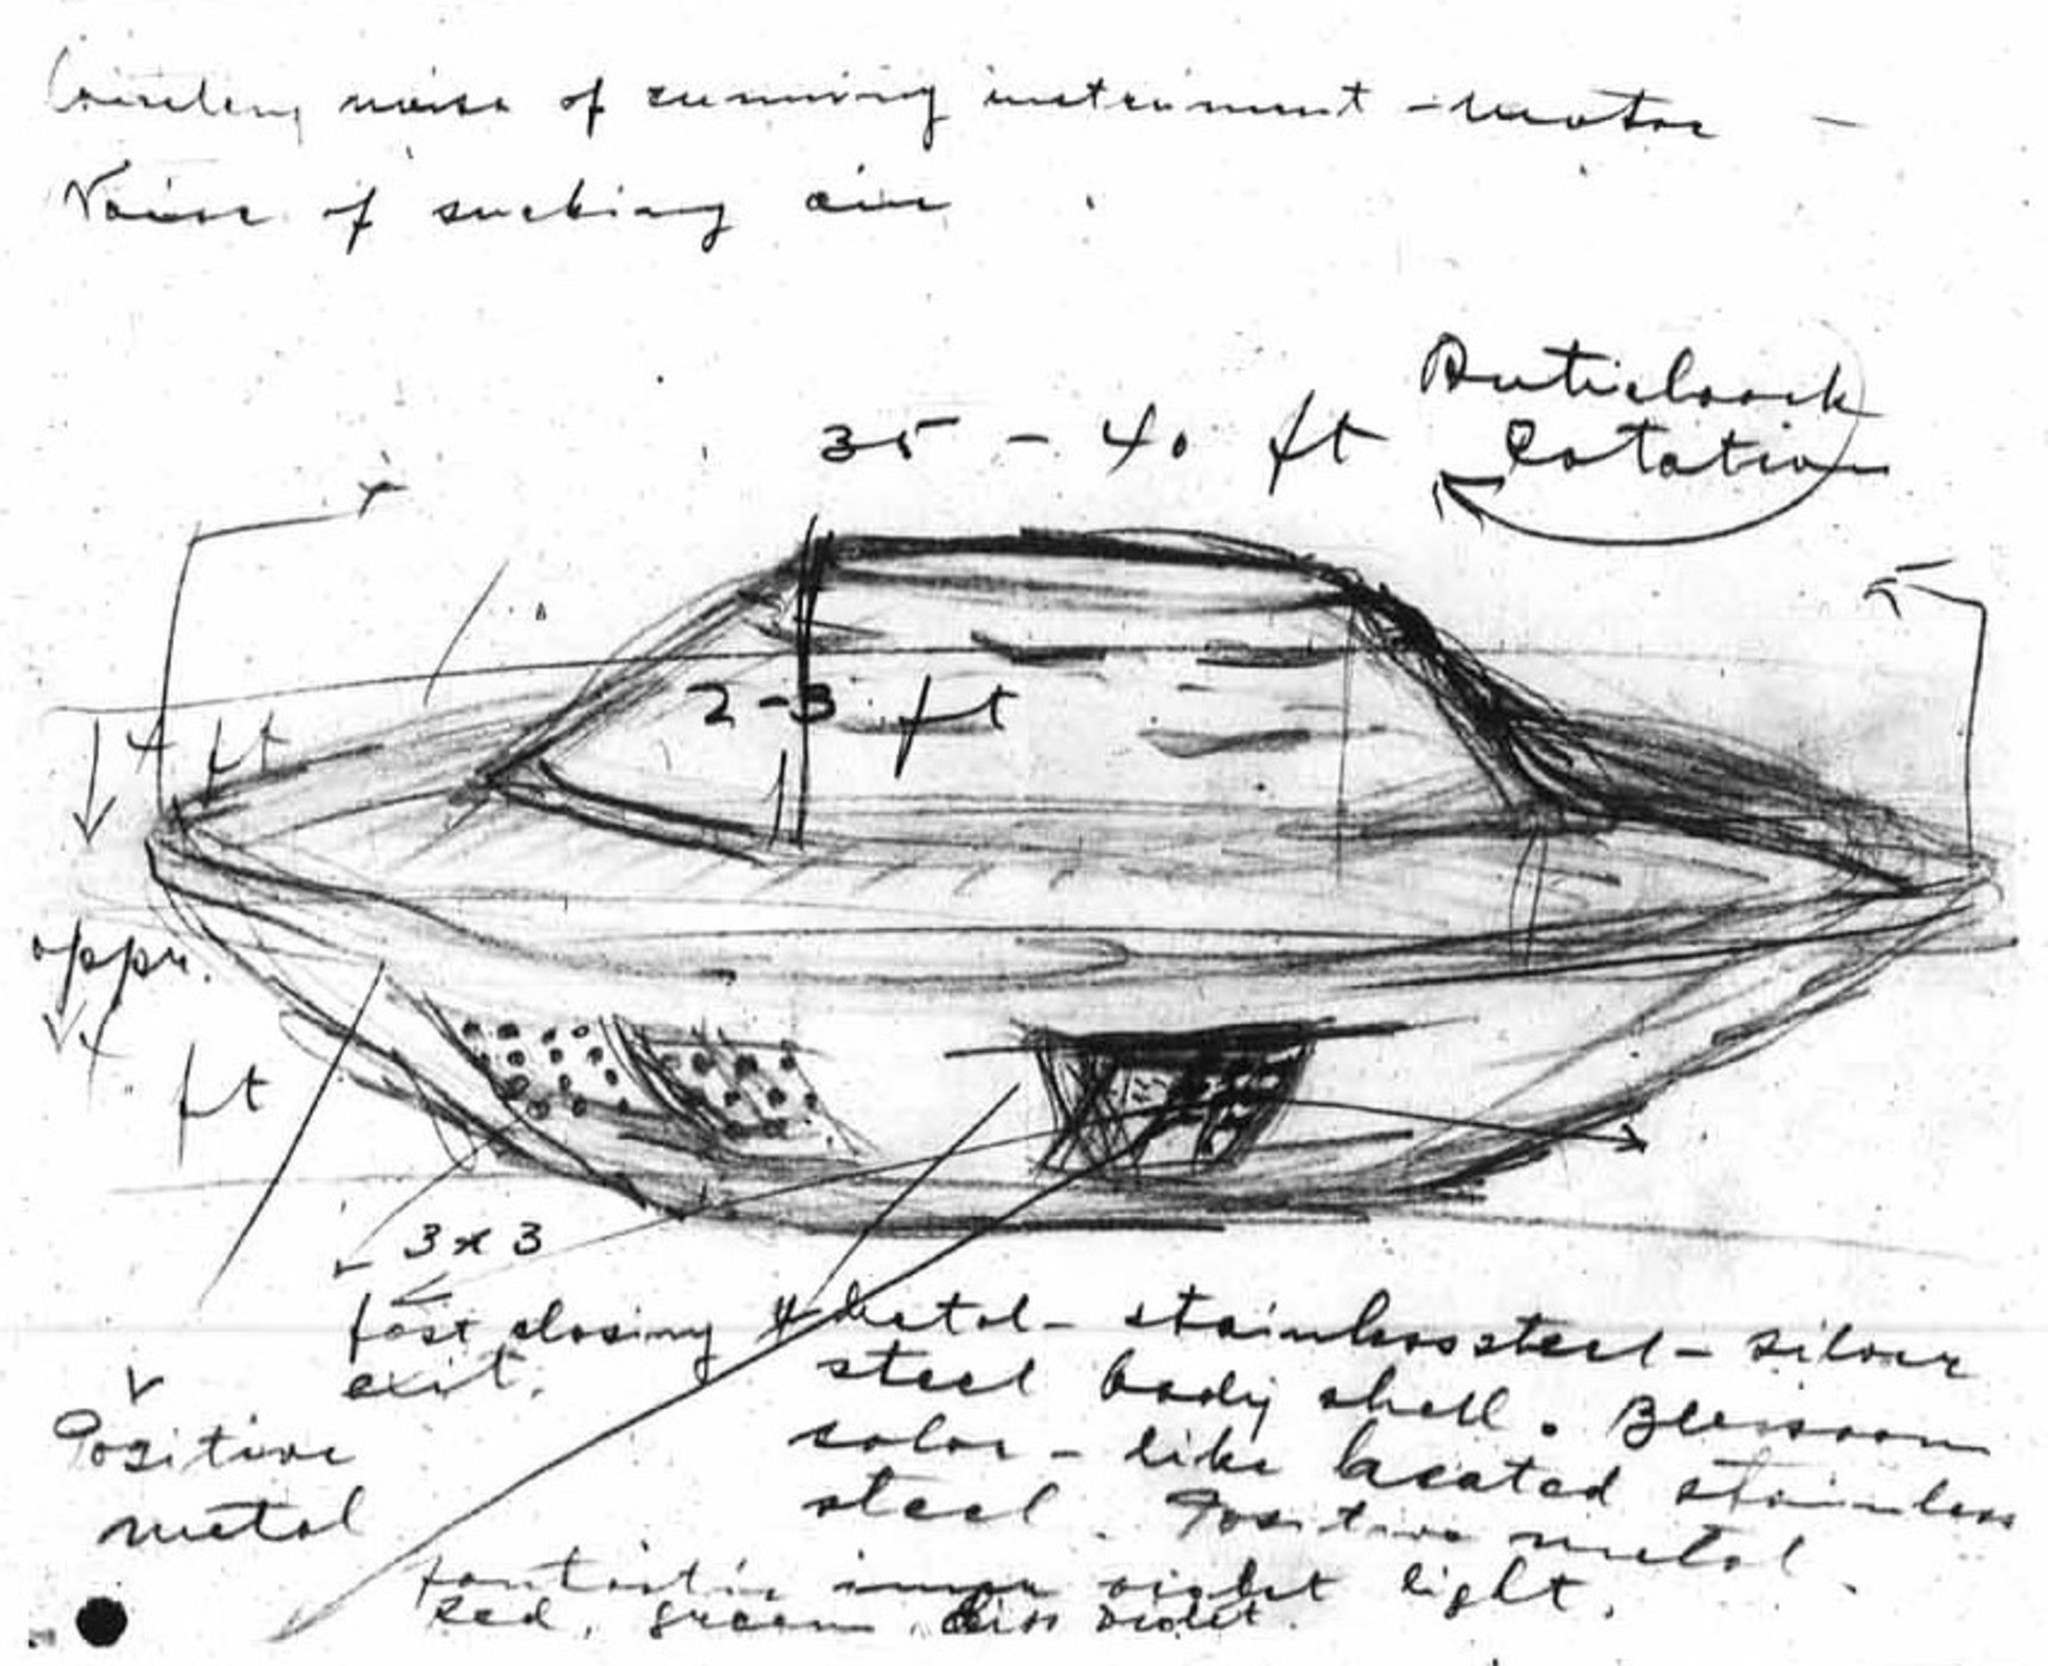 Sketch made by Stefan Michalak after witnessing an unidentified flying object in 1967. It's now widely known as the Falcon Lake Incident.</p></p>